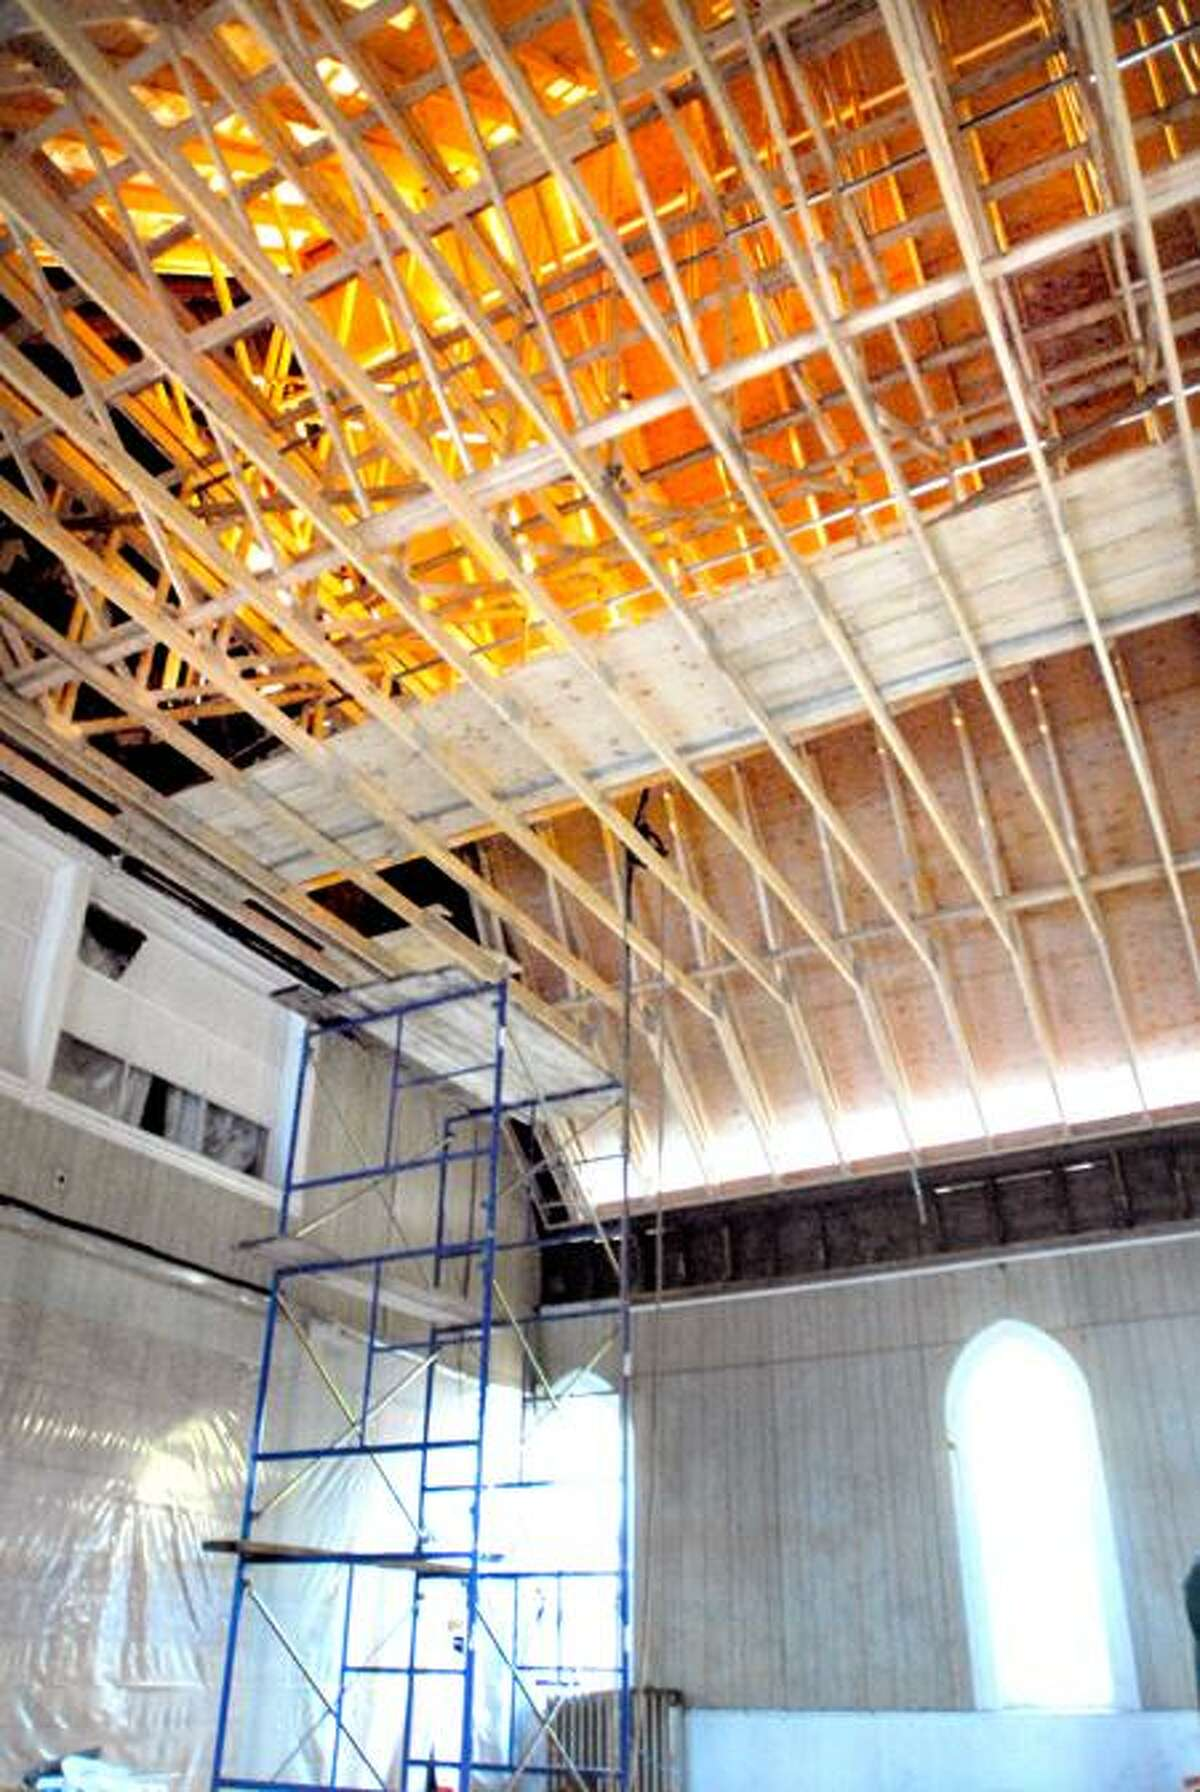 The roof under construction can be seen in the sanctuary at the New Light Holy Church on Howard Avenue in New Haven. Photo by Arnold Gold/New Haven Register